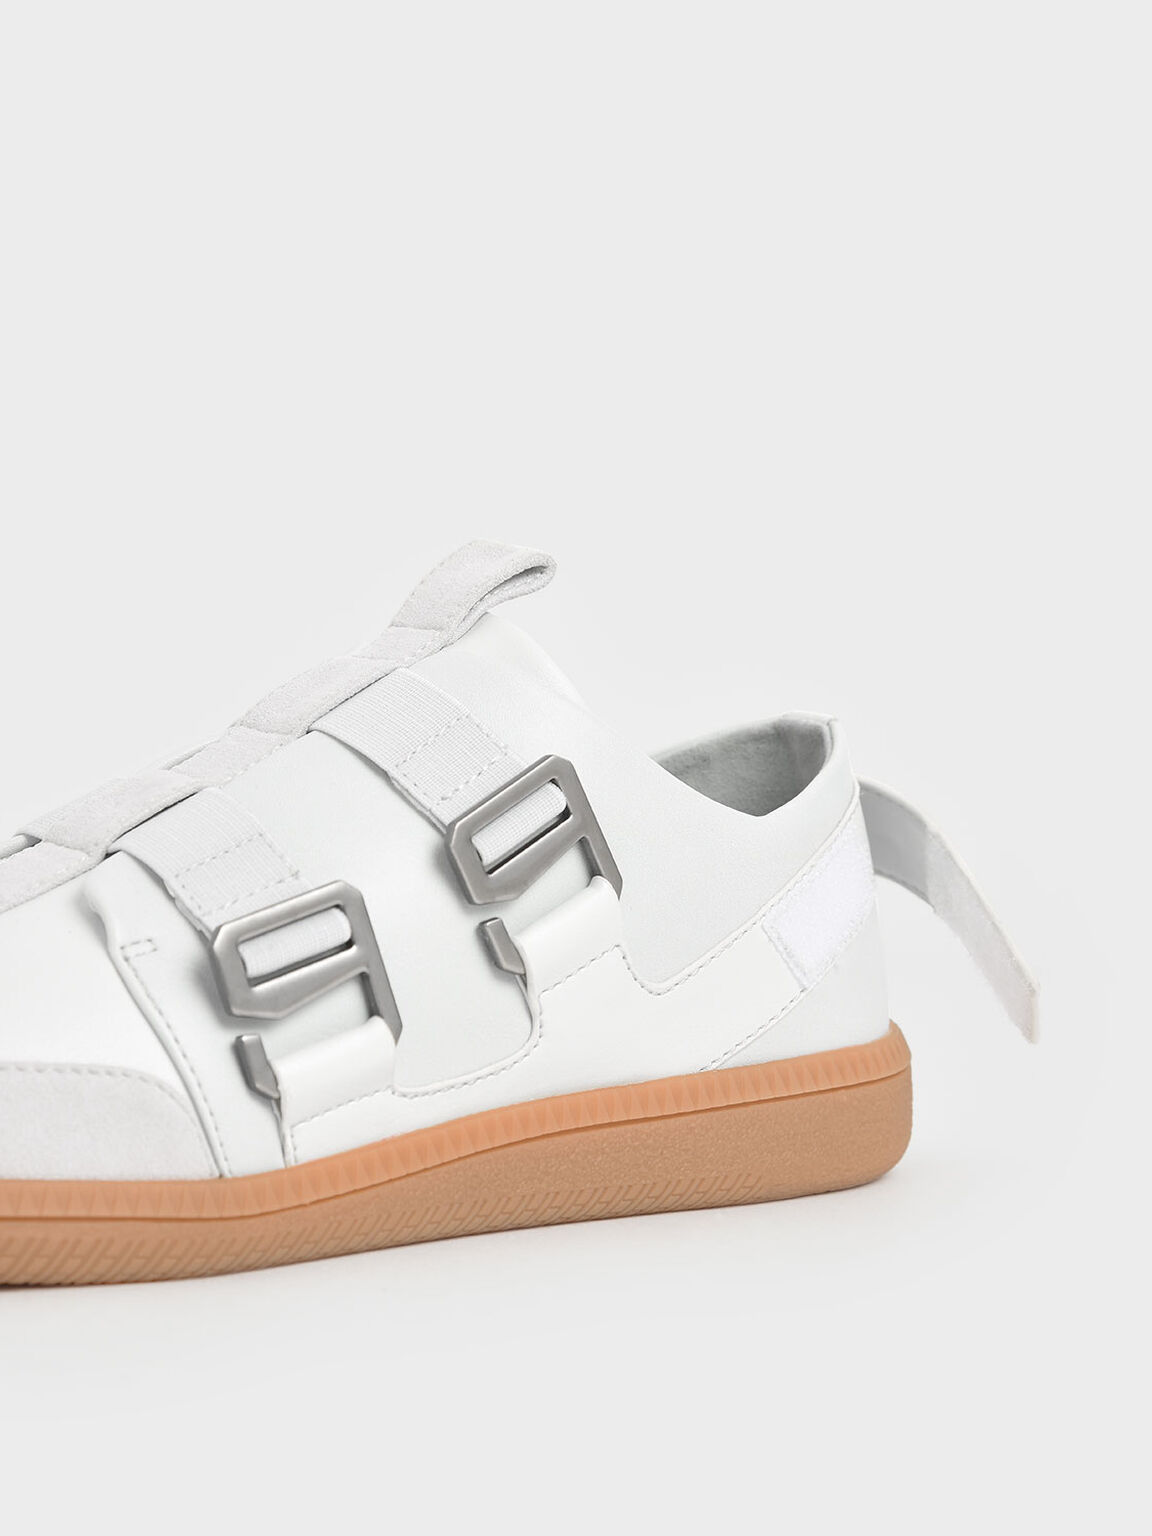 Buckle Slip-On Sneakers, White, hi-res